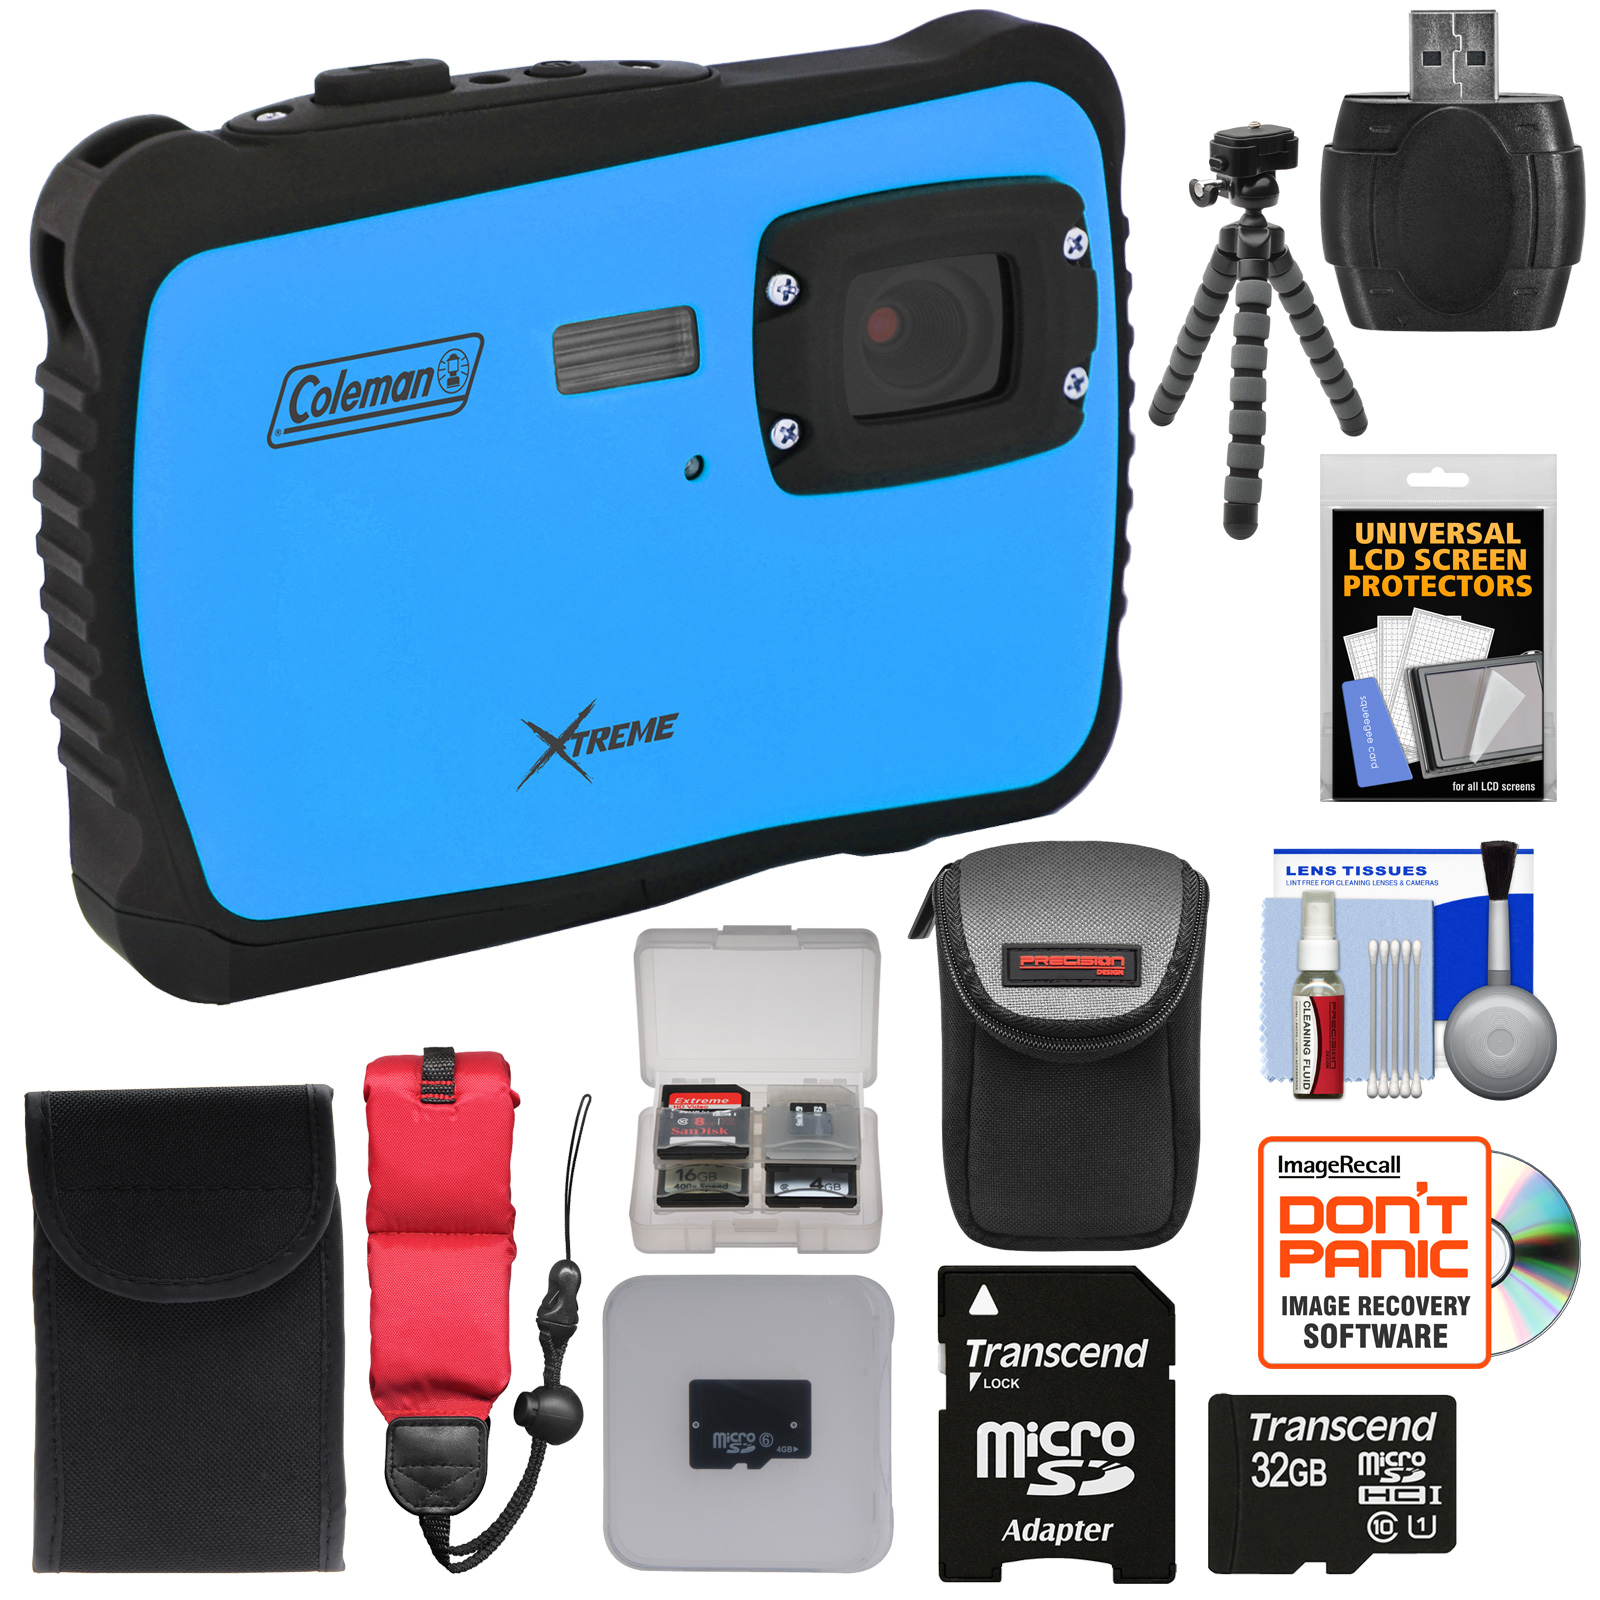 Coleman Xtreme C6WP HD Shock & Waterproof Digital Camera (Blue) with 32GB Card + Case + Flex Tripod + Kit